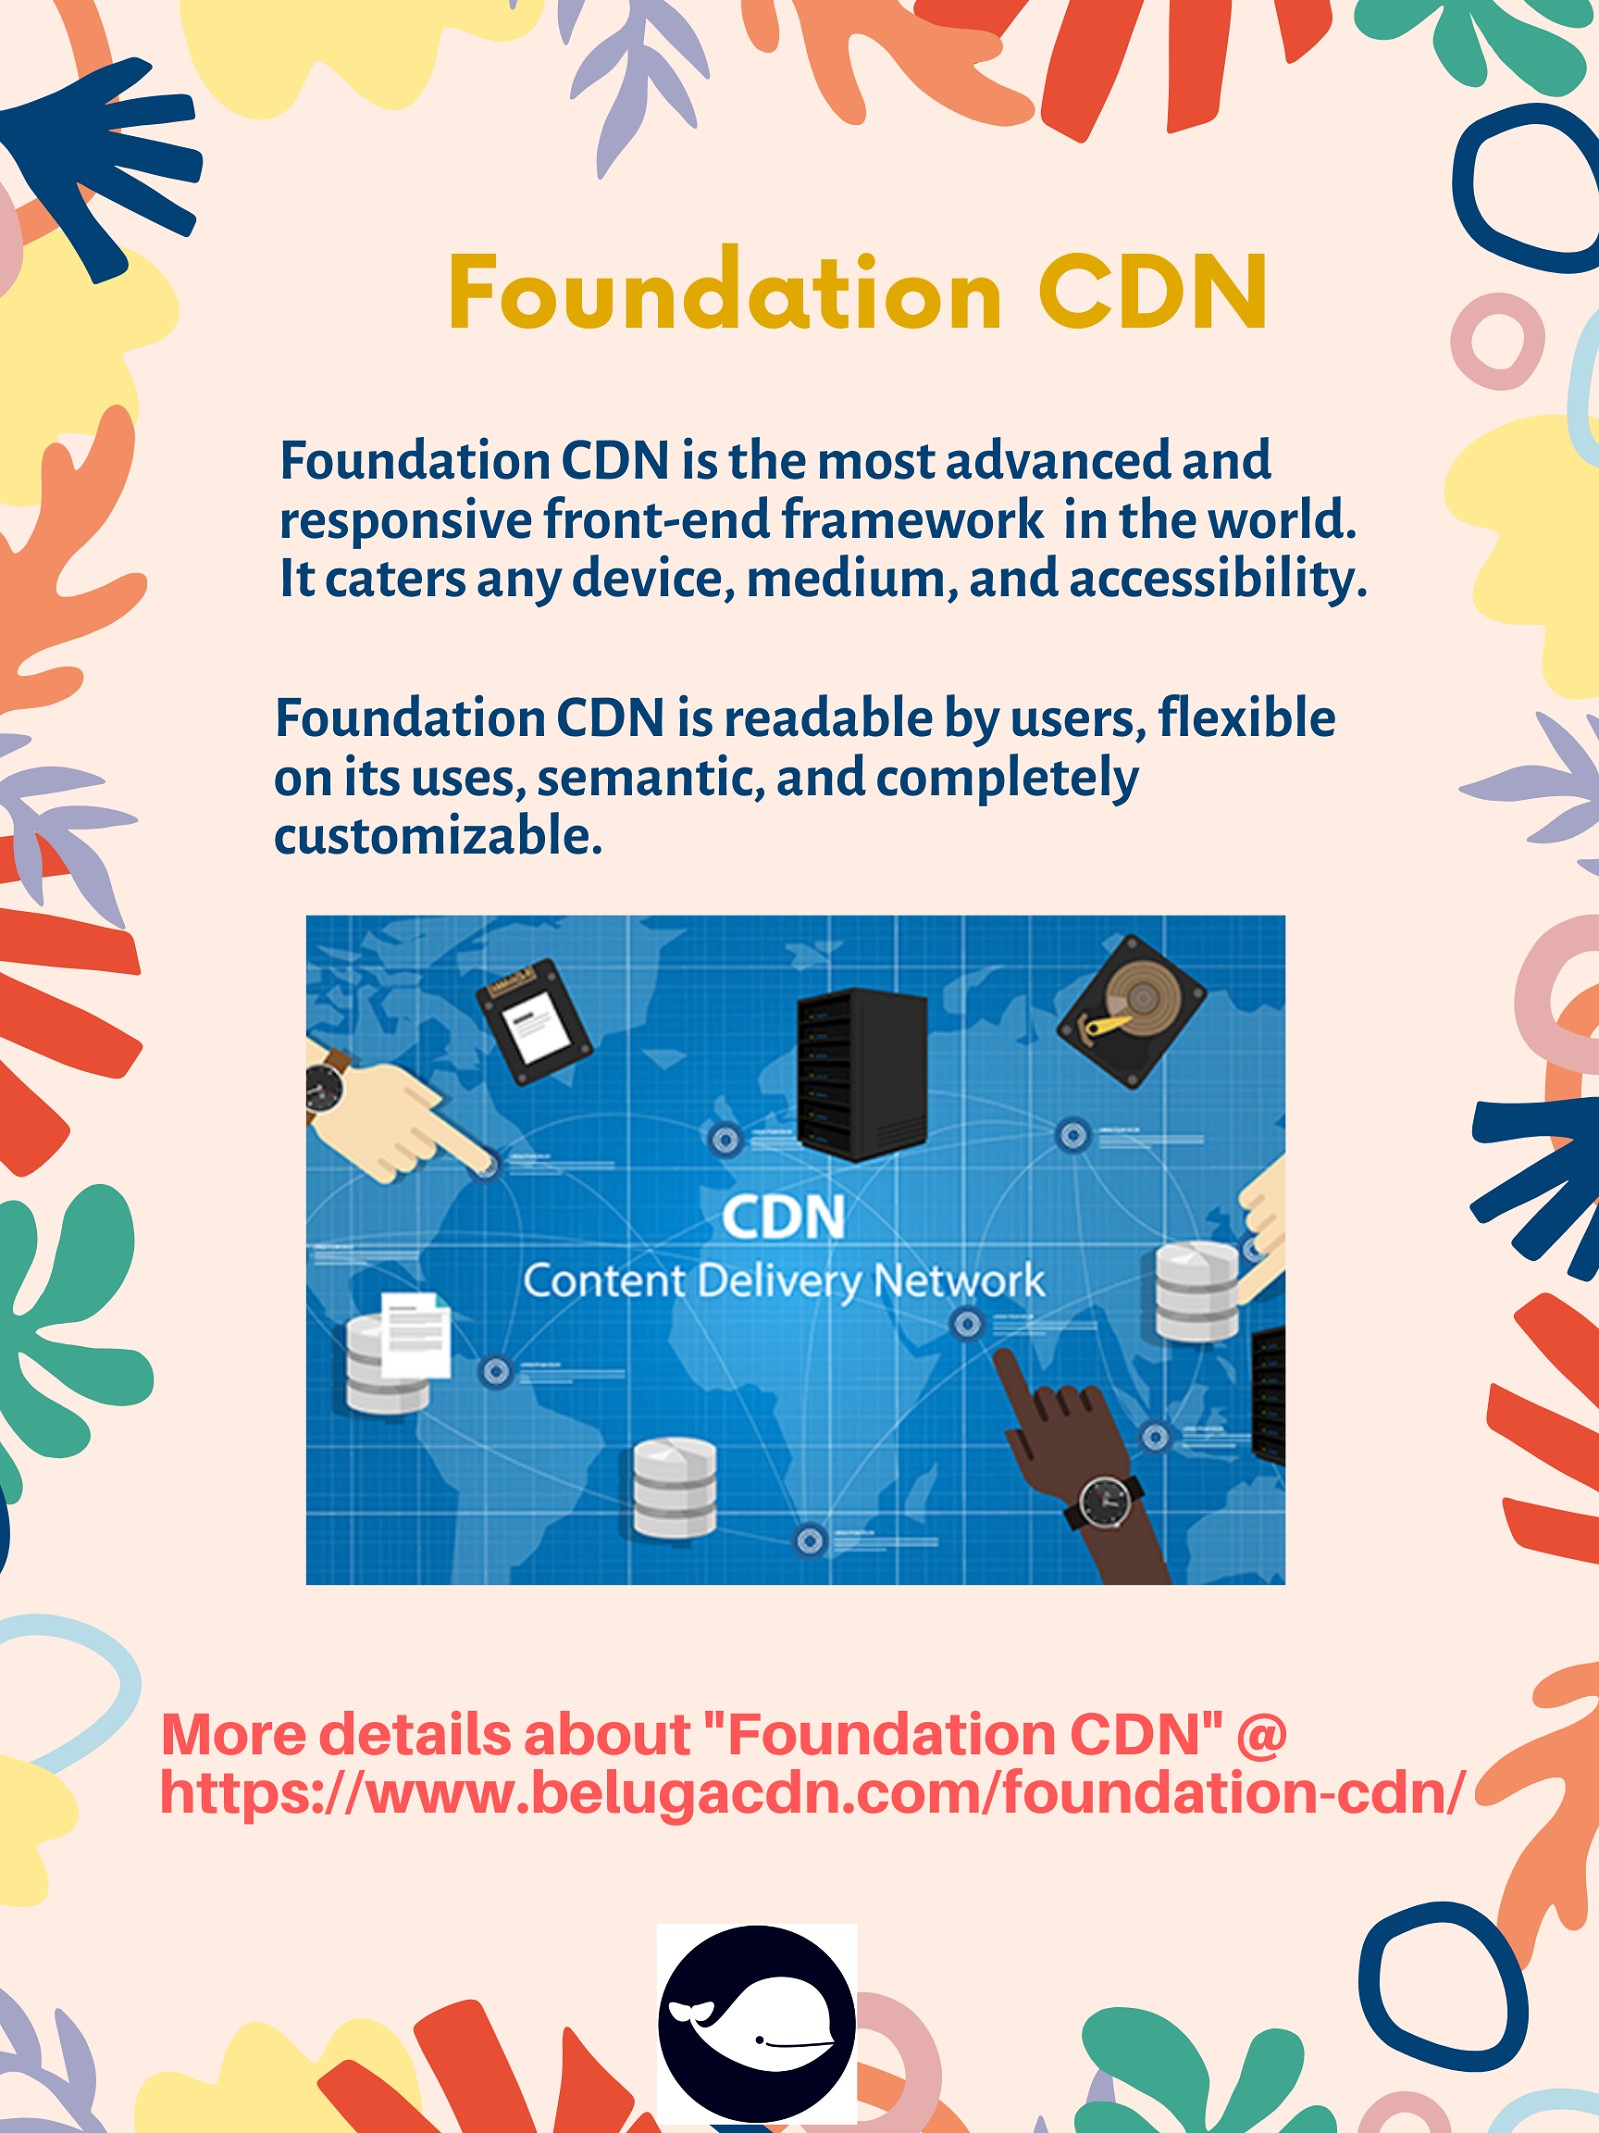 Foundation CDN Features